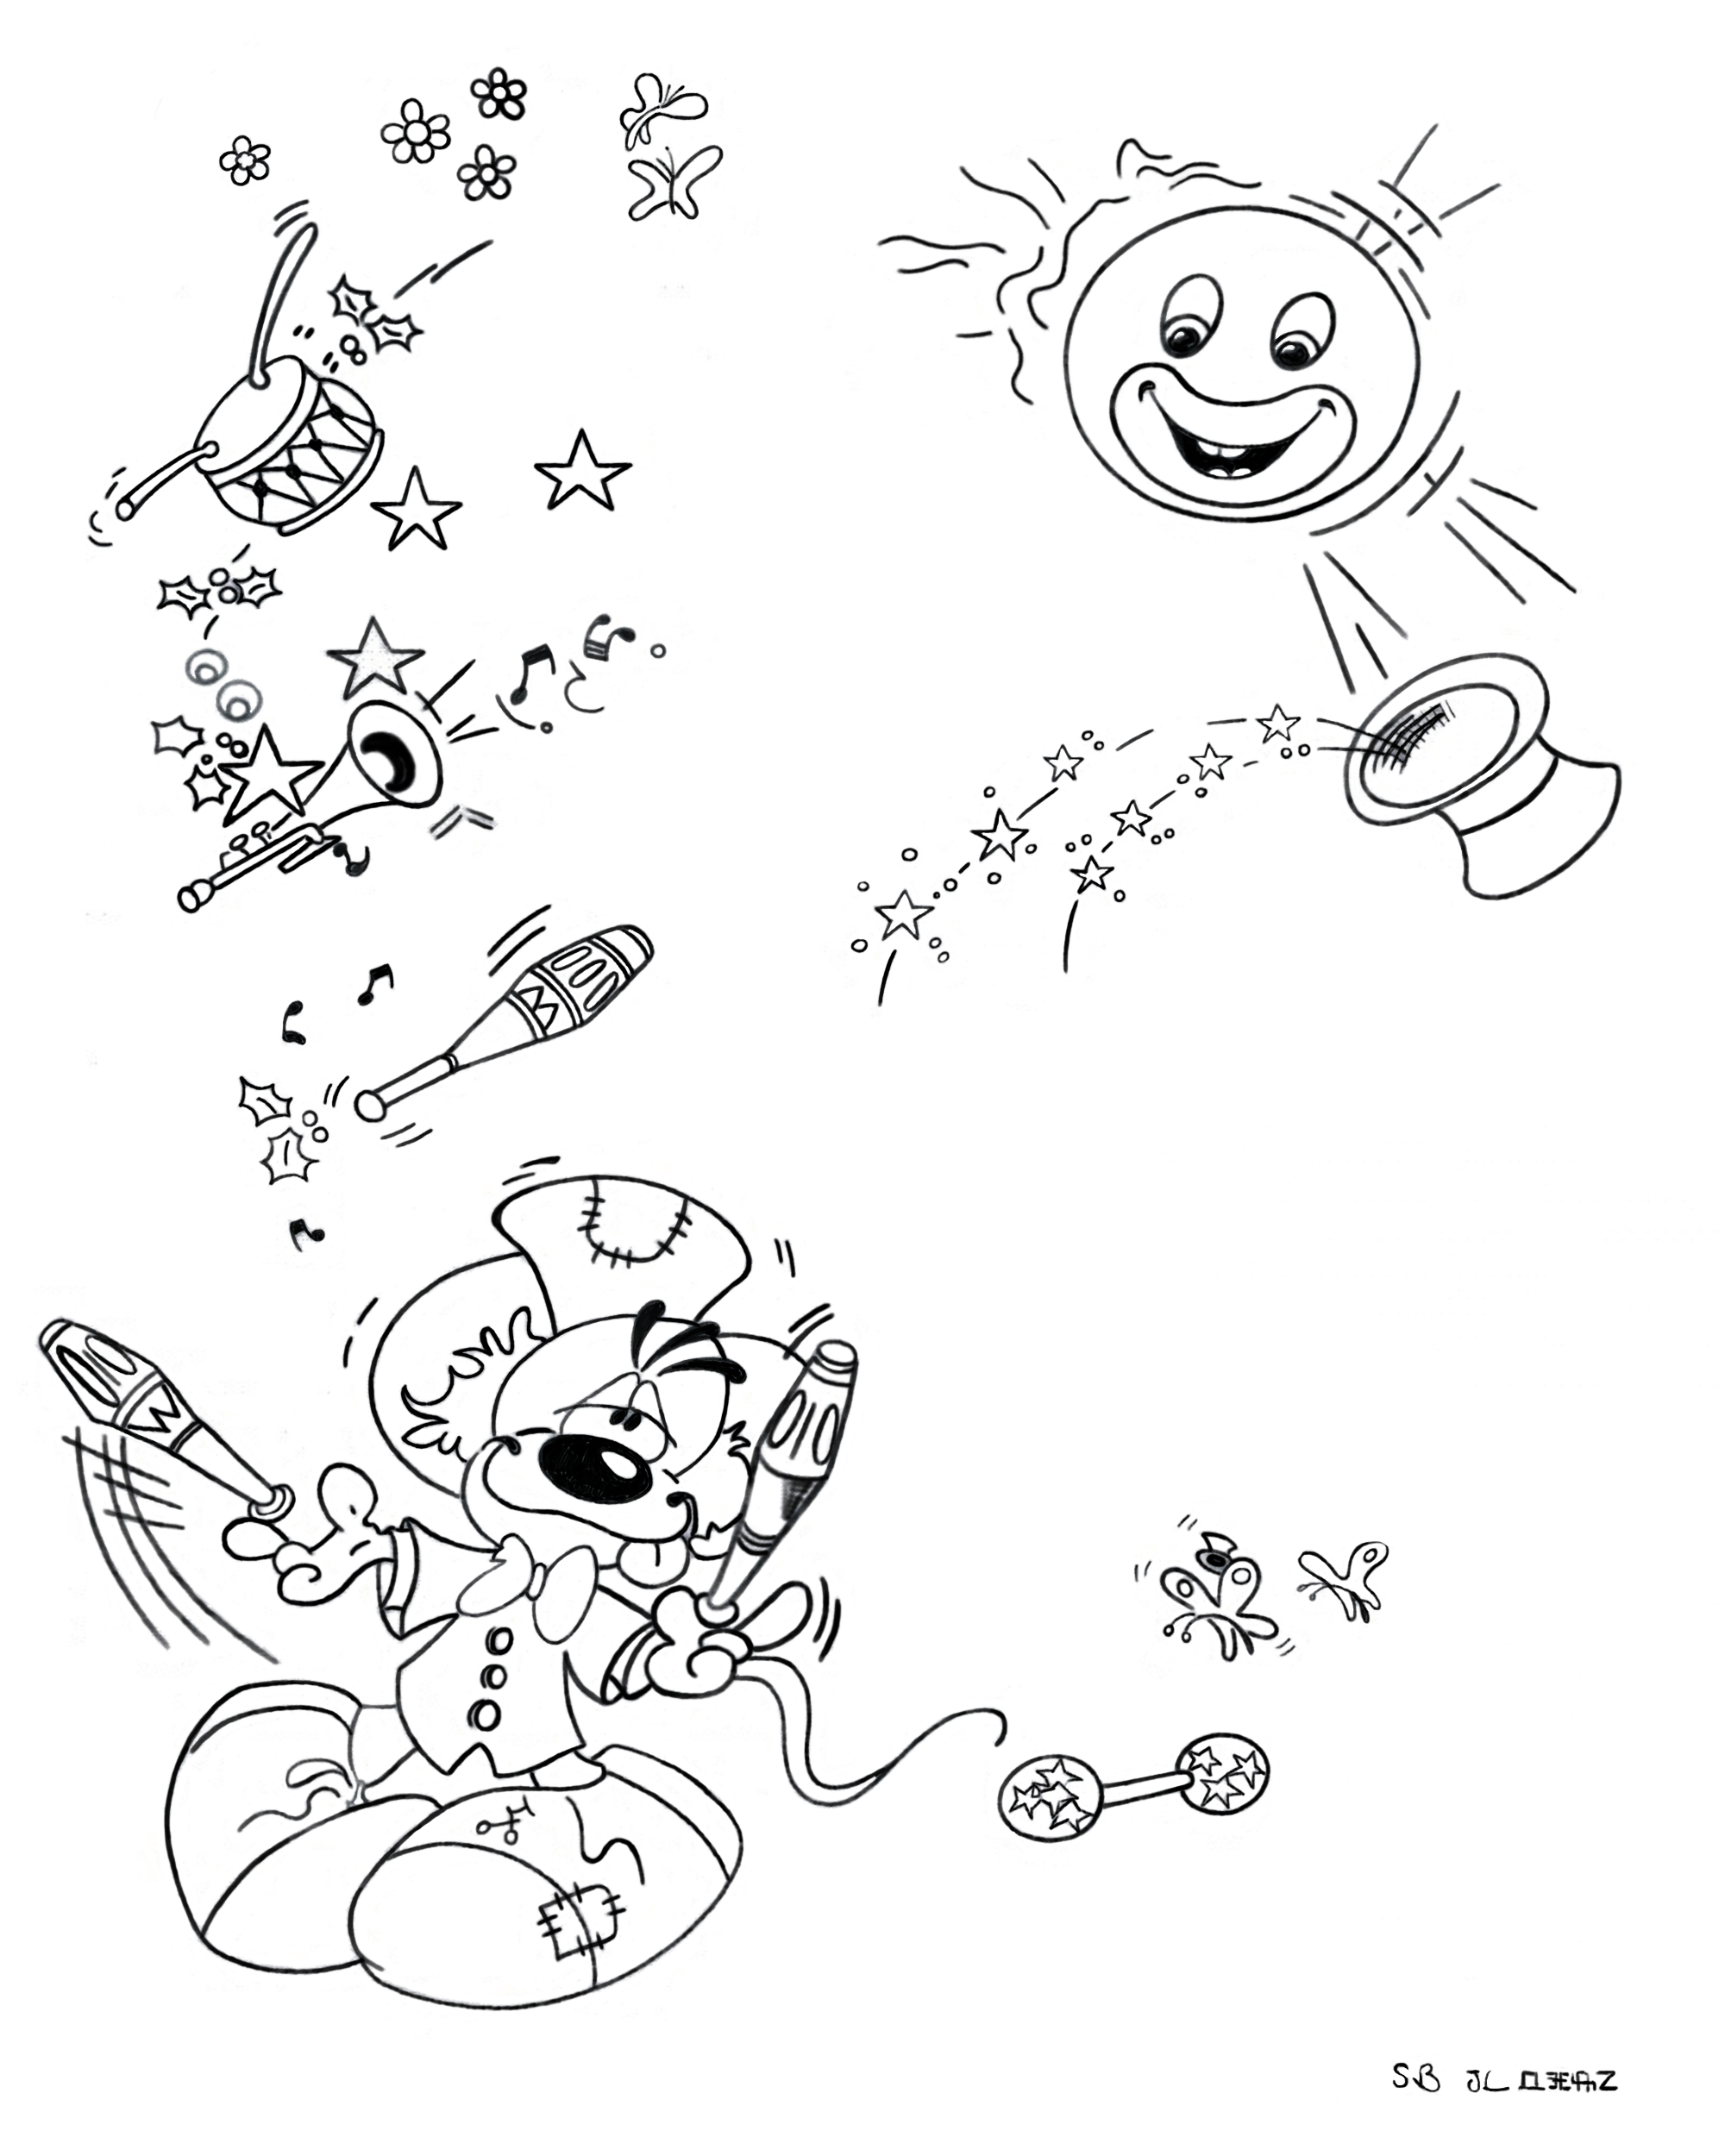 Funny Diddl coloring page for children